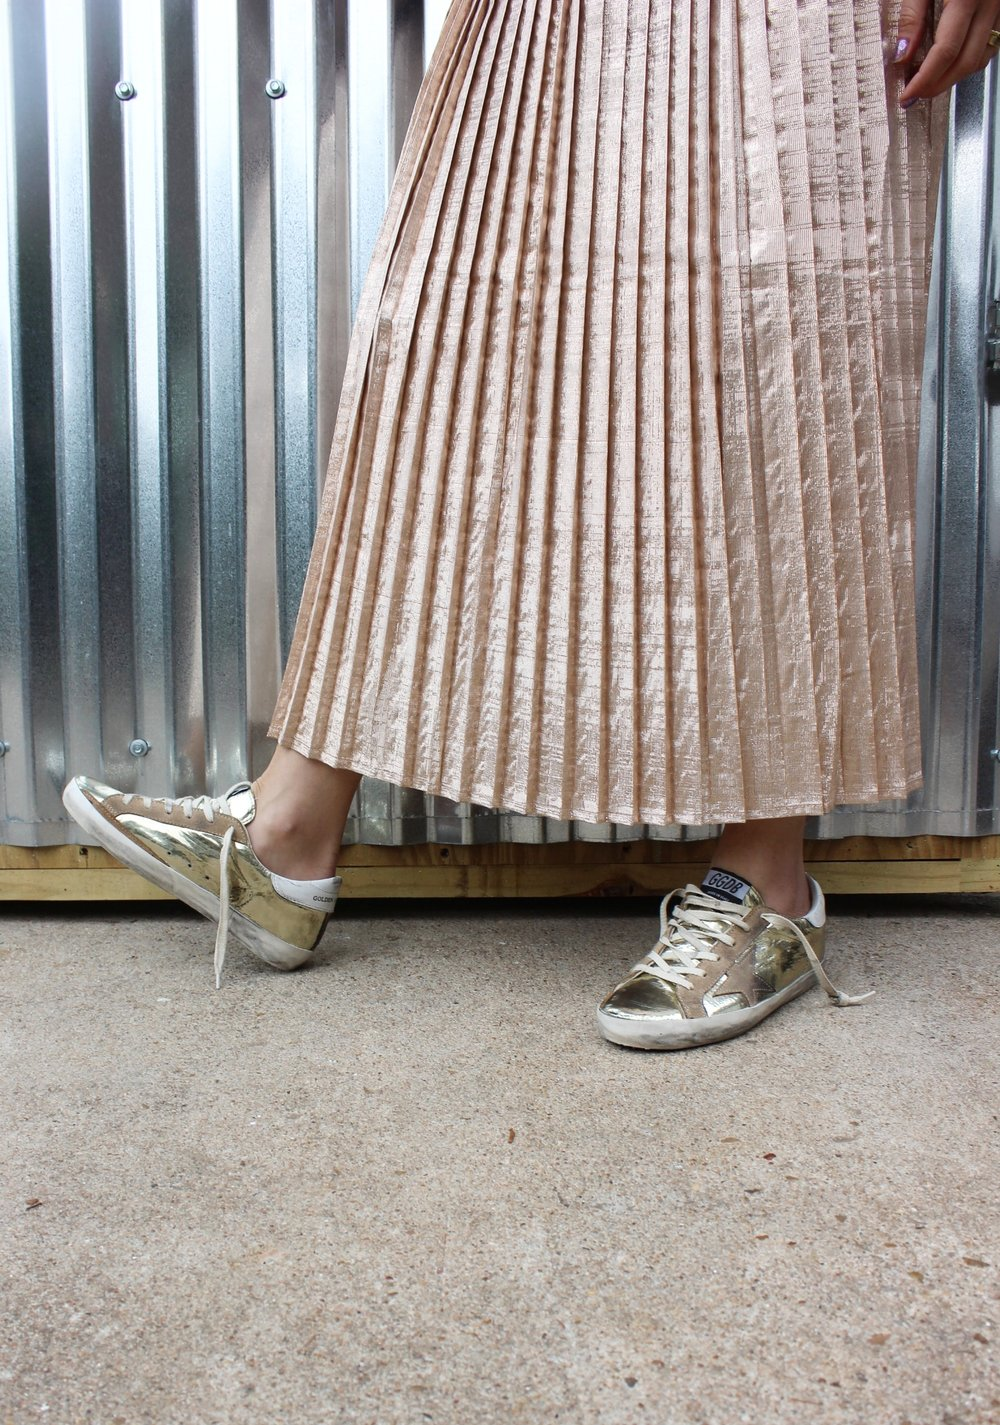 Tamar Mendelssohn The Shoe diet Polder metallic pleated skirt holiday '16